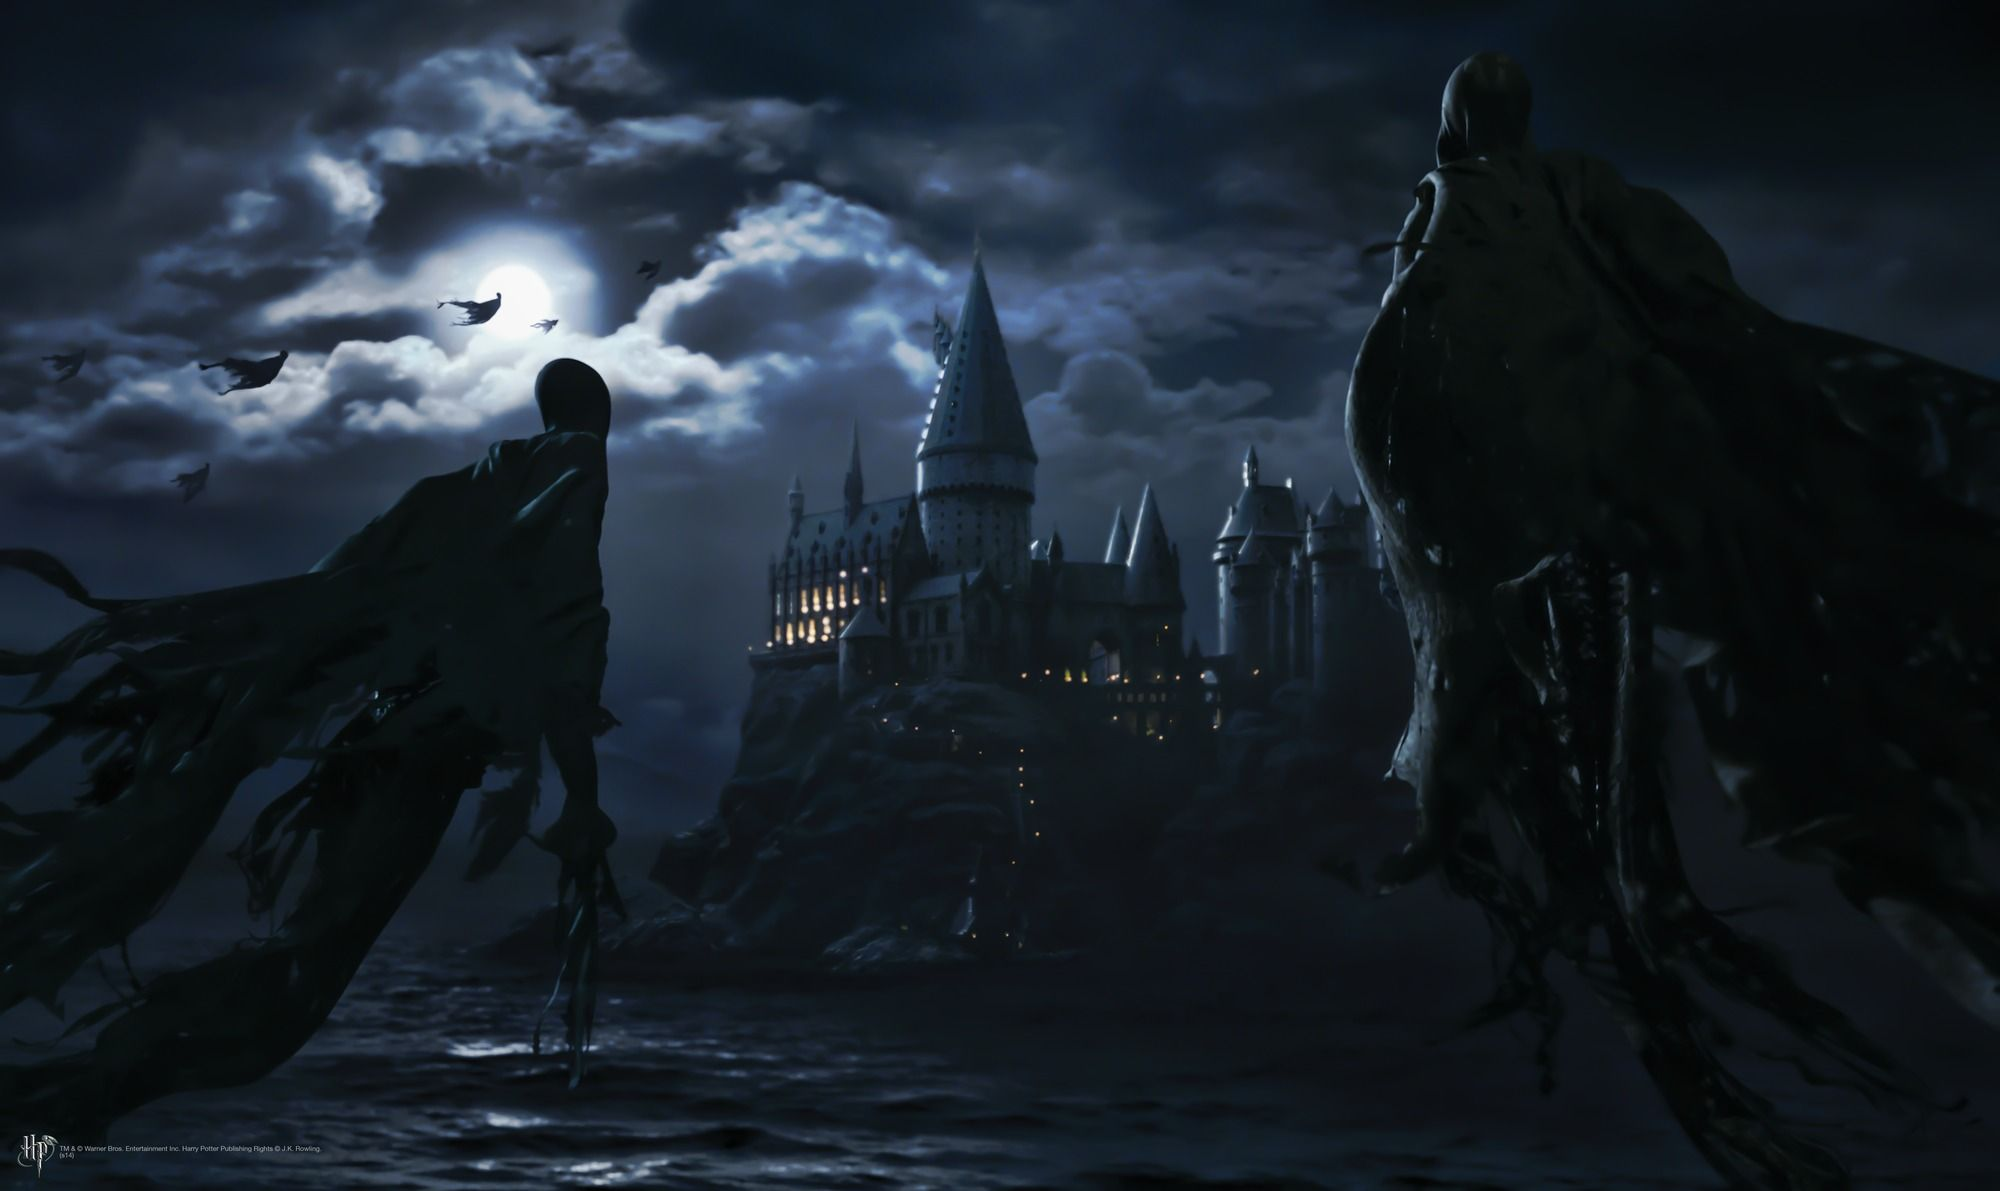 How To Paint A Mural On A Wall Dementors Attack Hogwarts Wallpaper Mural For My Kiddos